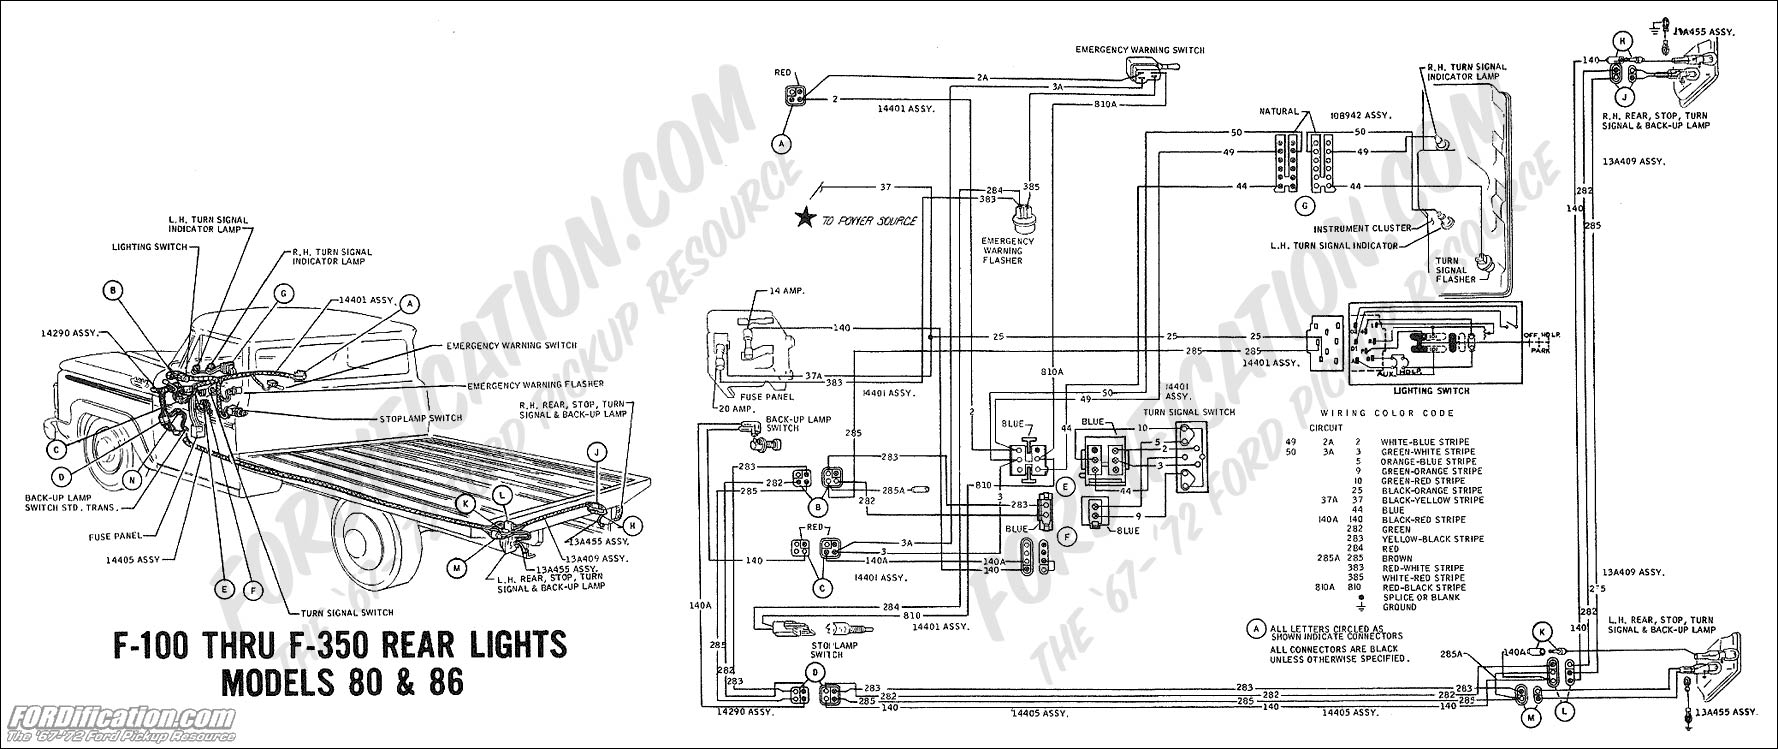 1969 Ford F 350 Wiring Lamp Real Diagram Double Axle For Trailer Truck Technical Drawings And Schematics Section H Rh Fordification Com 2000